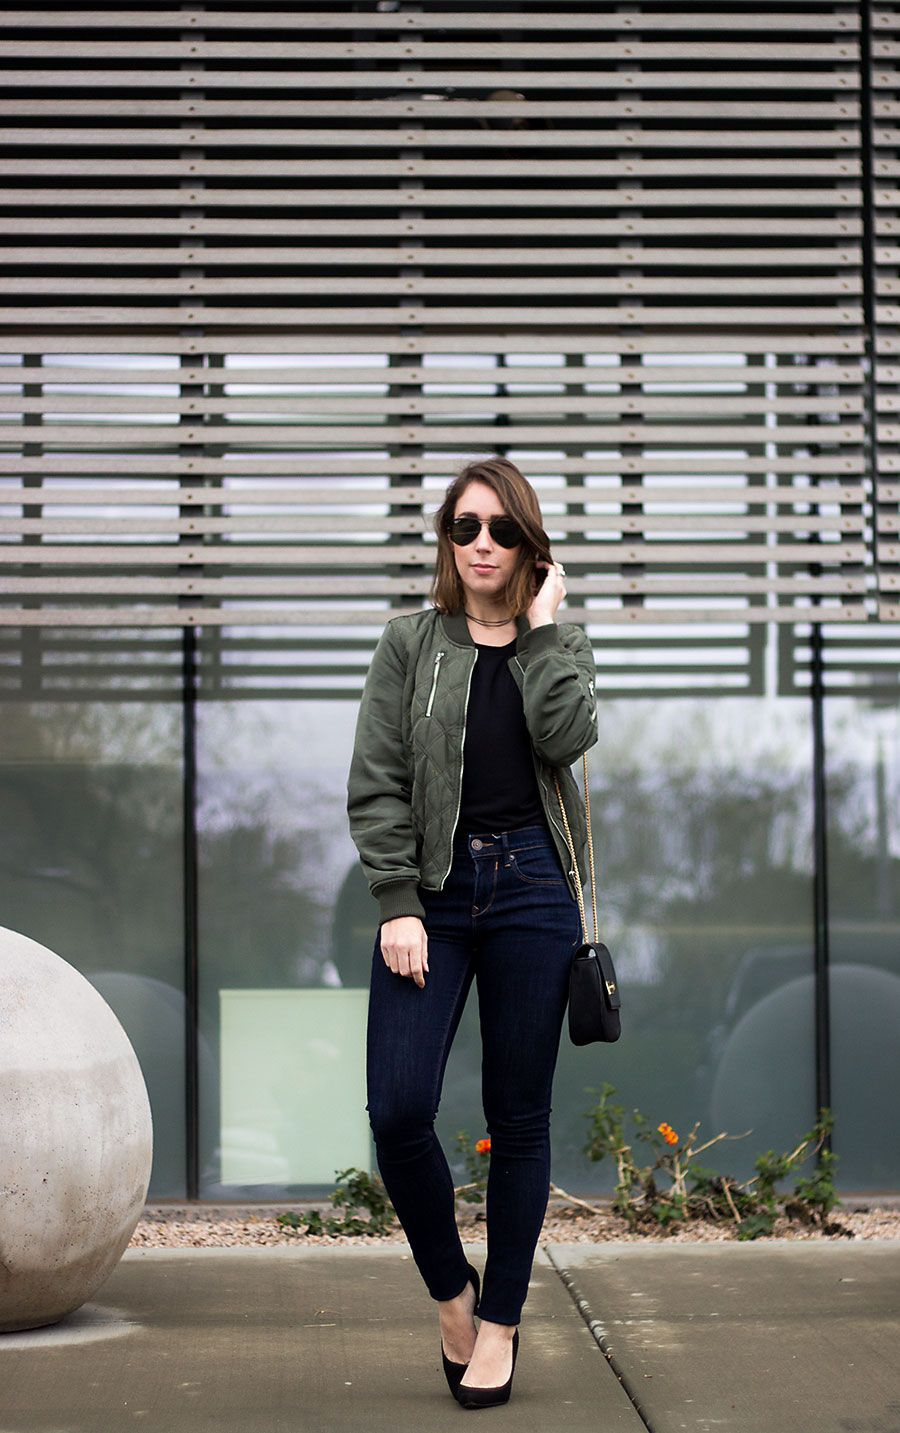 Bomber Jacket. Black sweater+skinny jeans+black pumps+khaki bomber jacket+black chain crossbody bag+aviator sunglassse+black choker. Winter Casual Outfit 2017